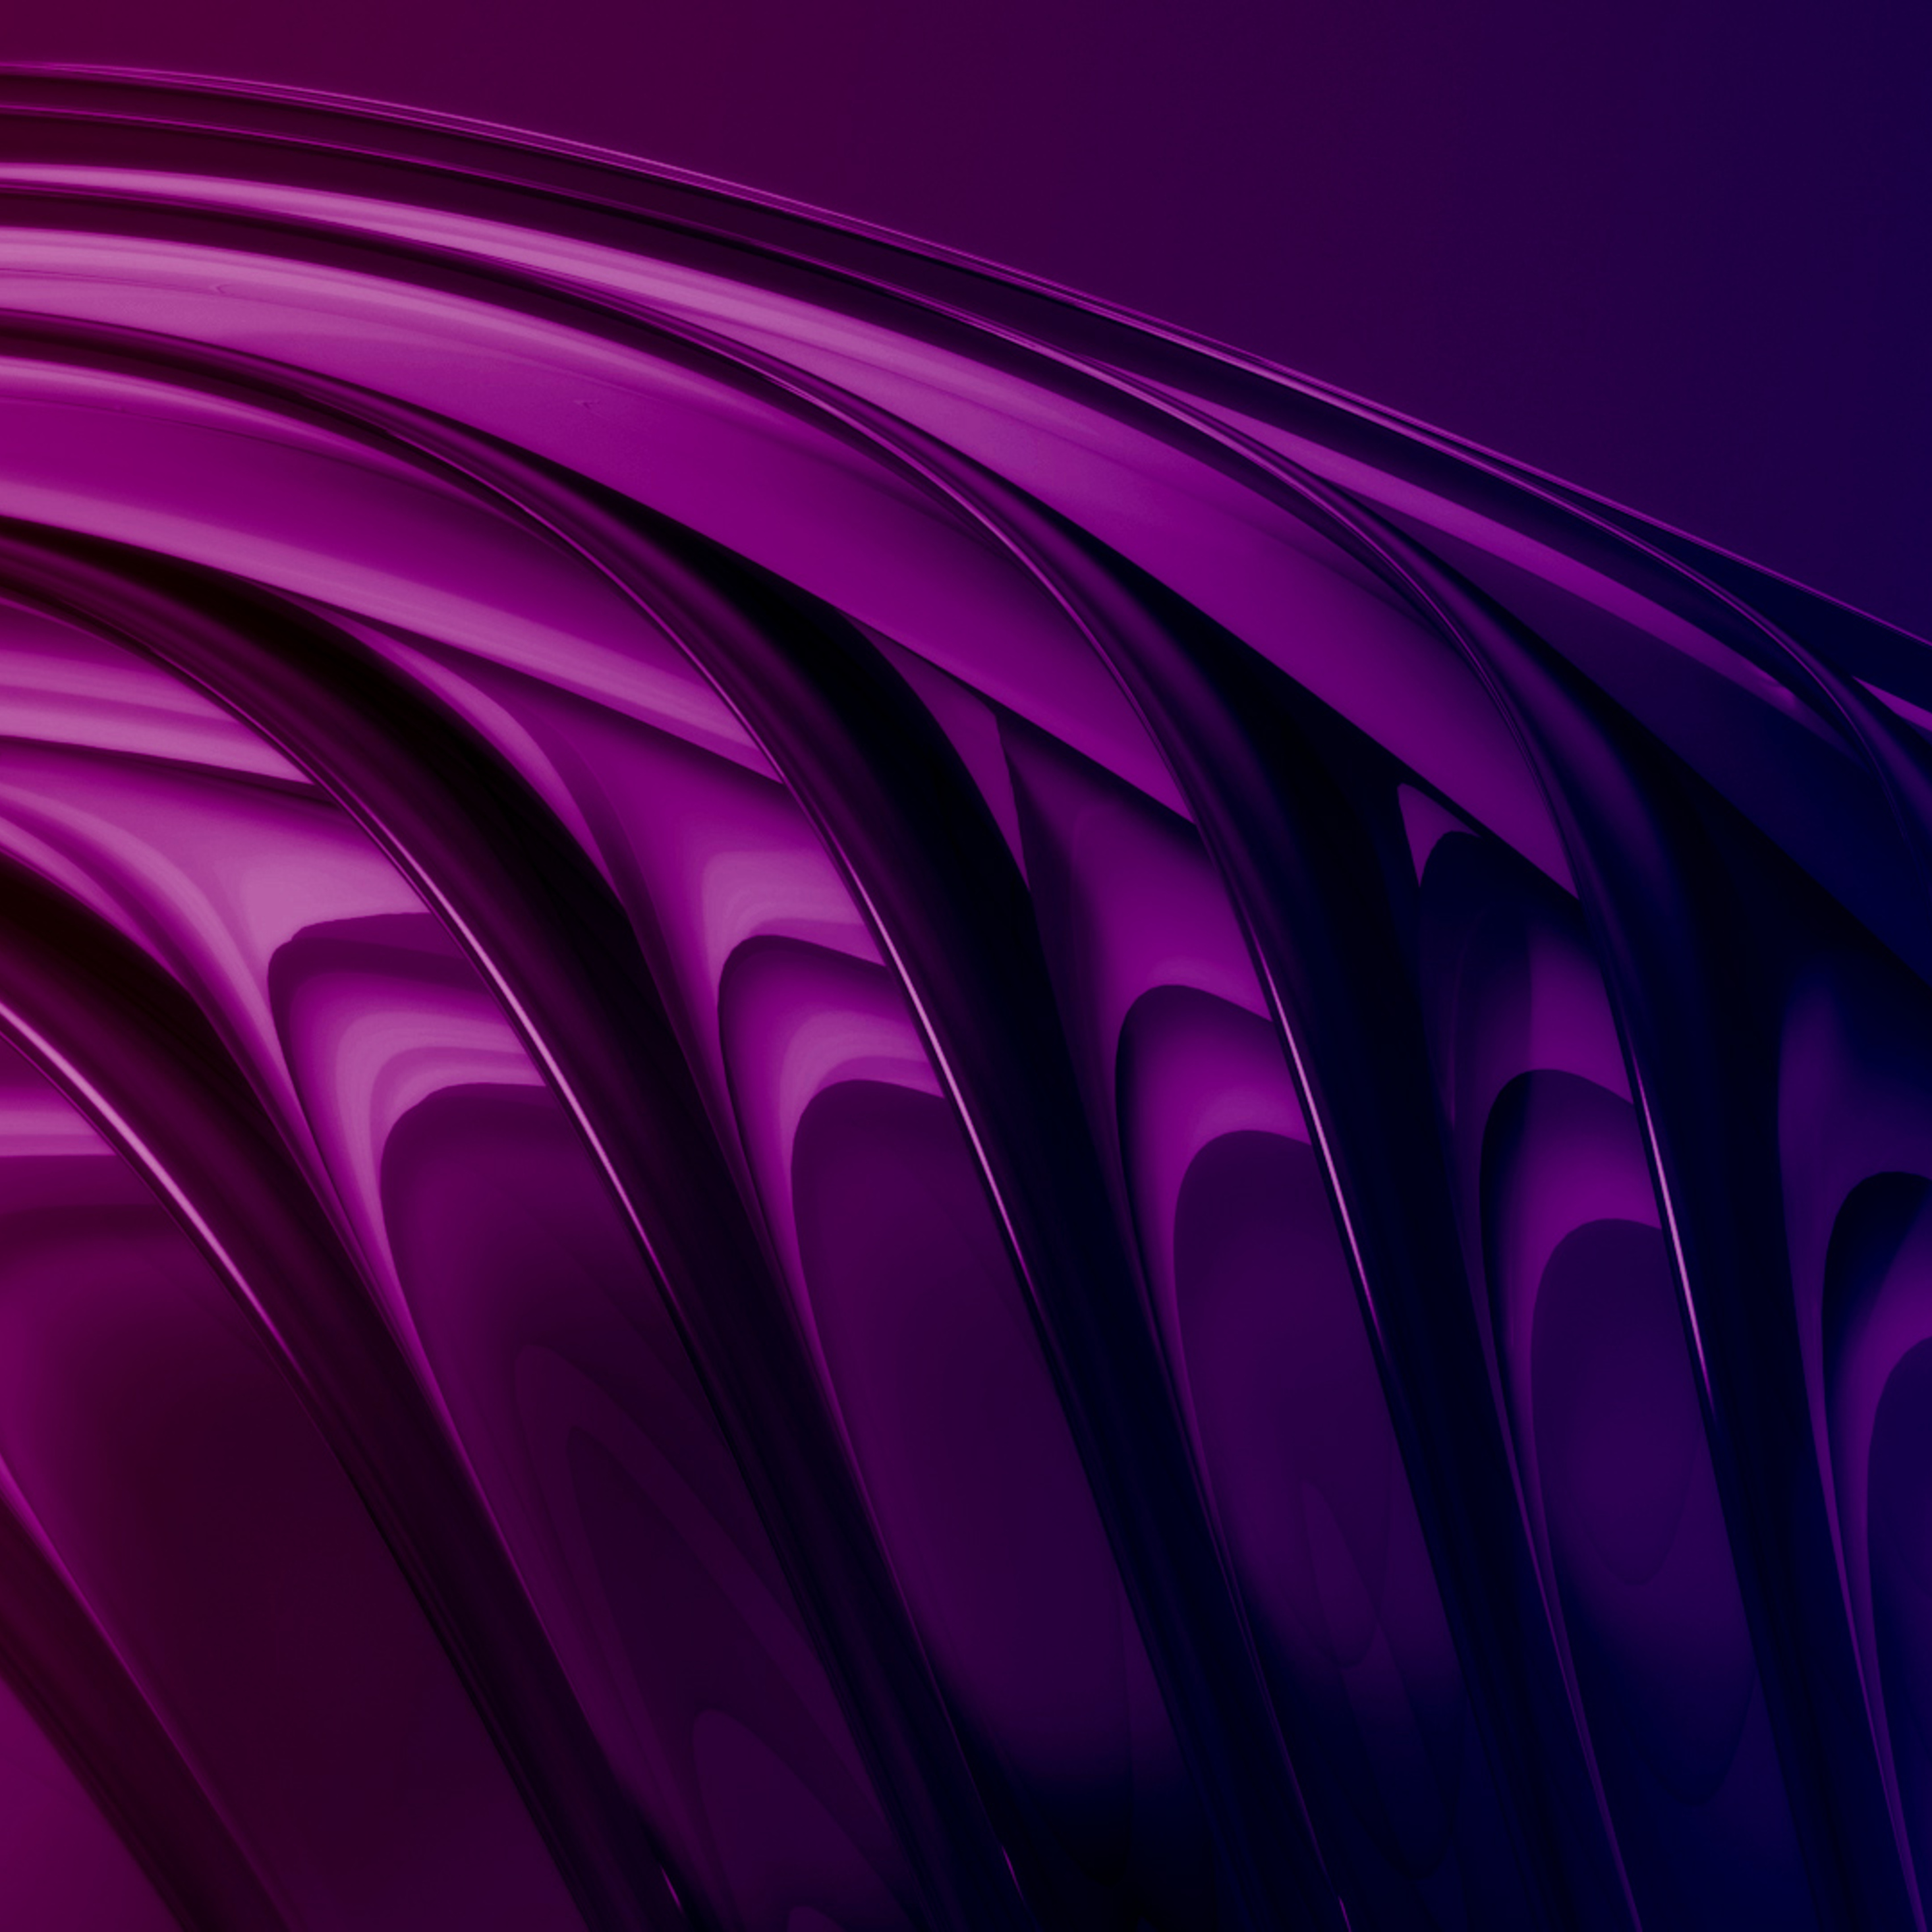 crystal-shapes-abstract-4-rb.jpg